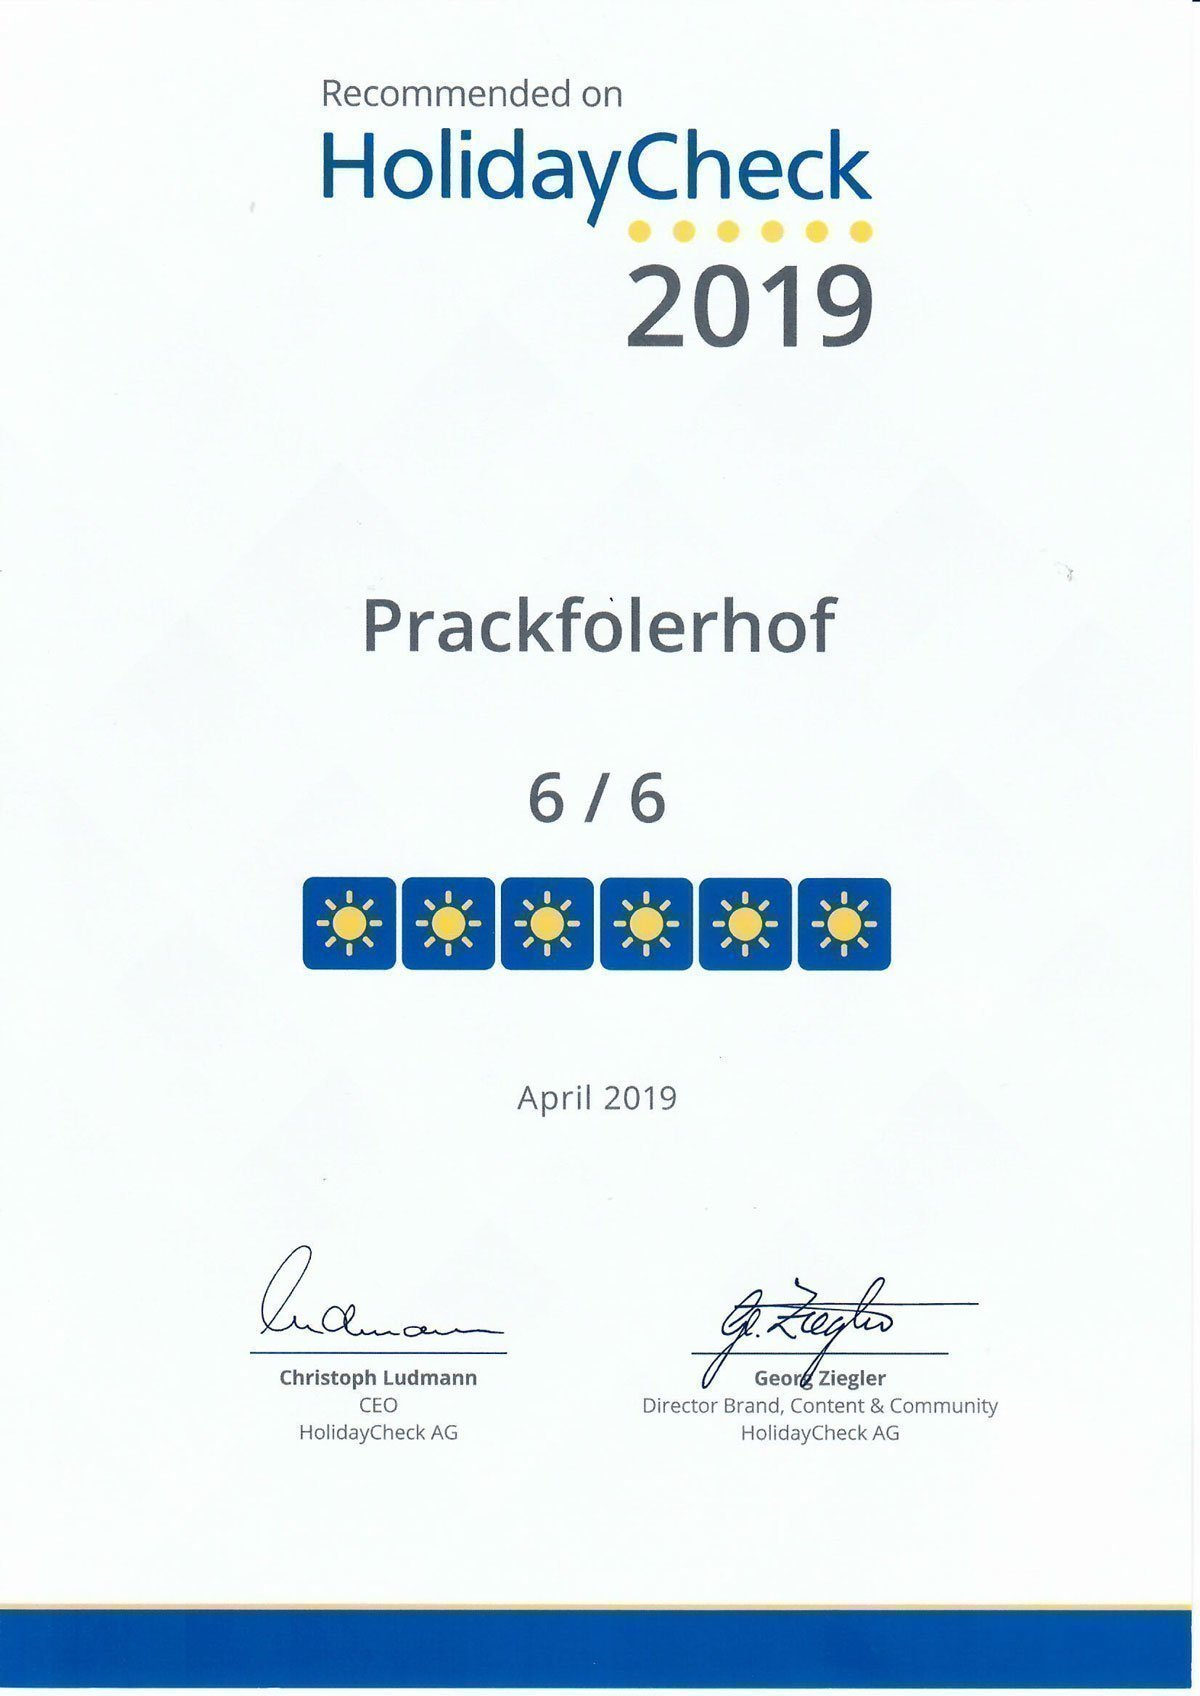 Award from Holiday Check for Prackfolerhof 2019